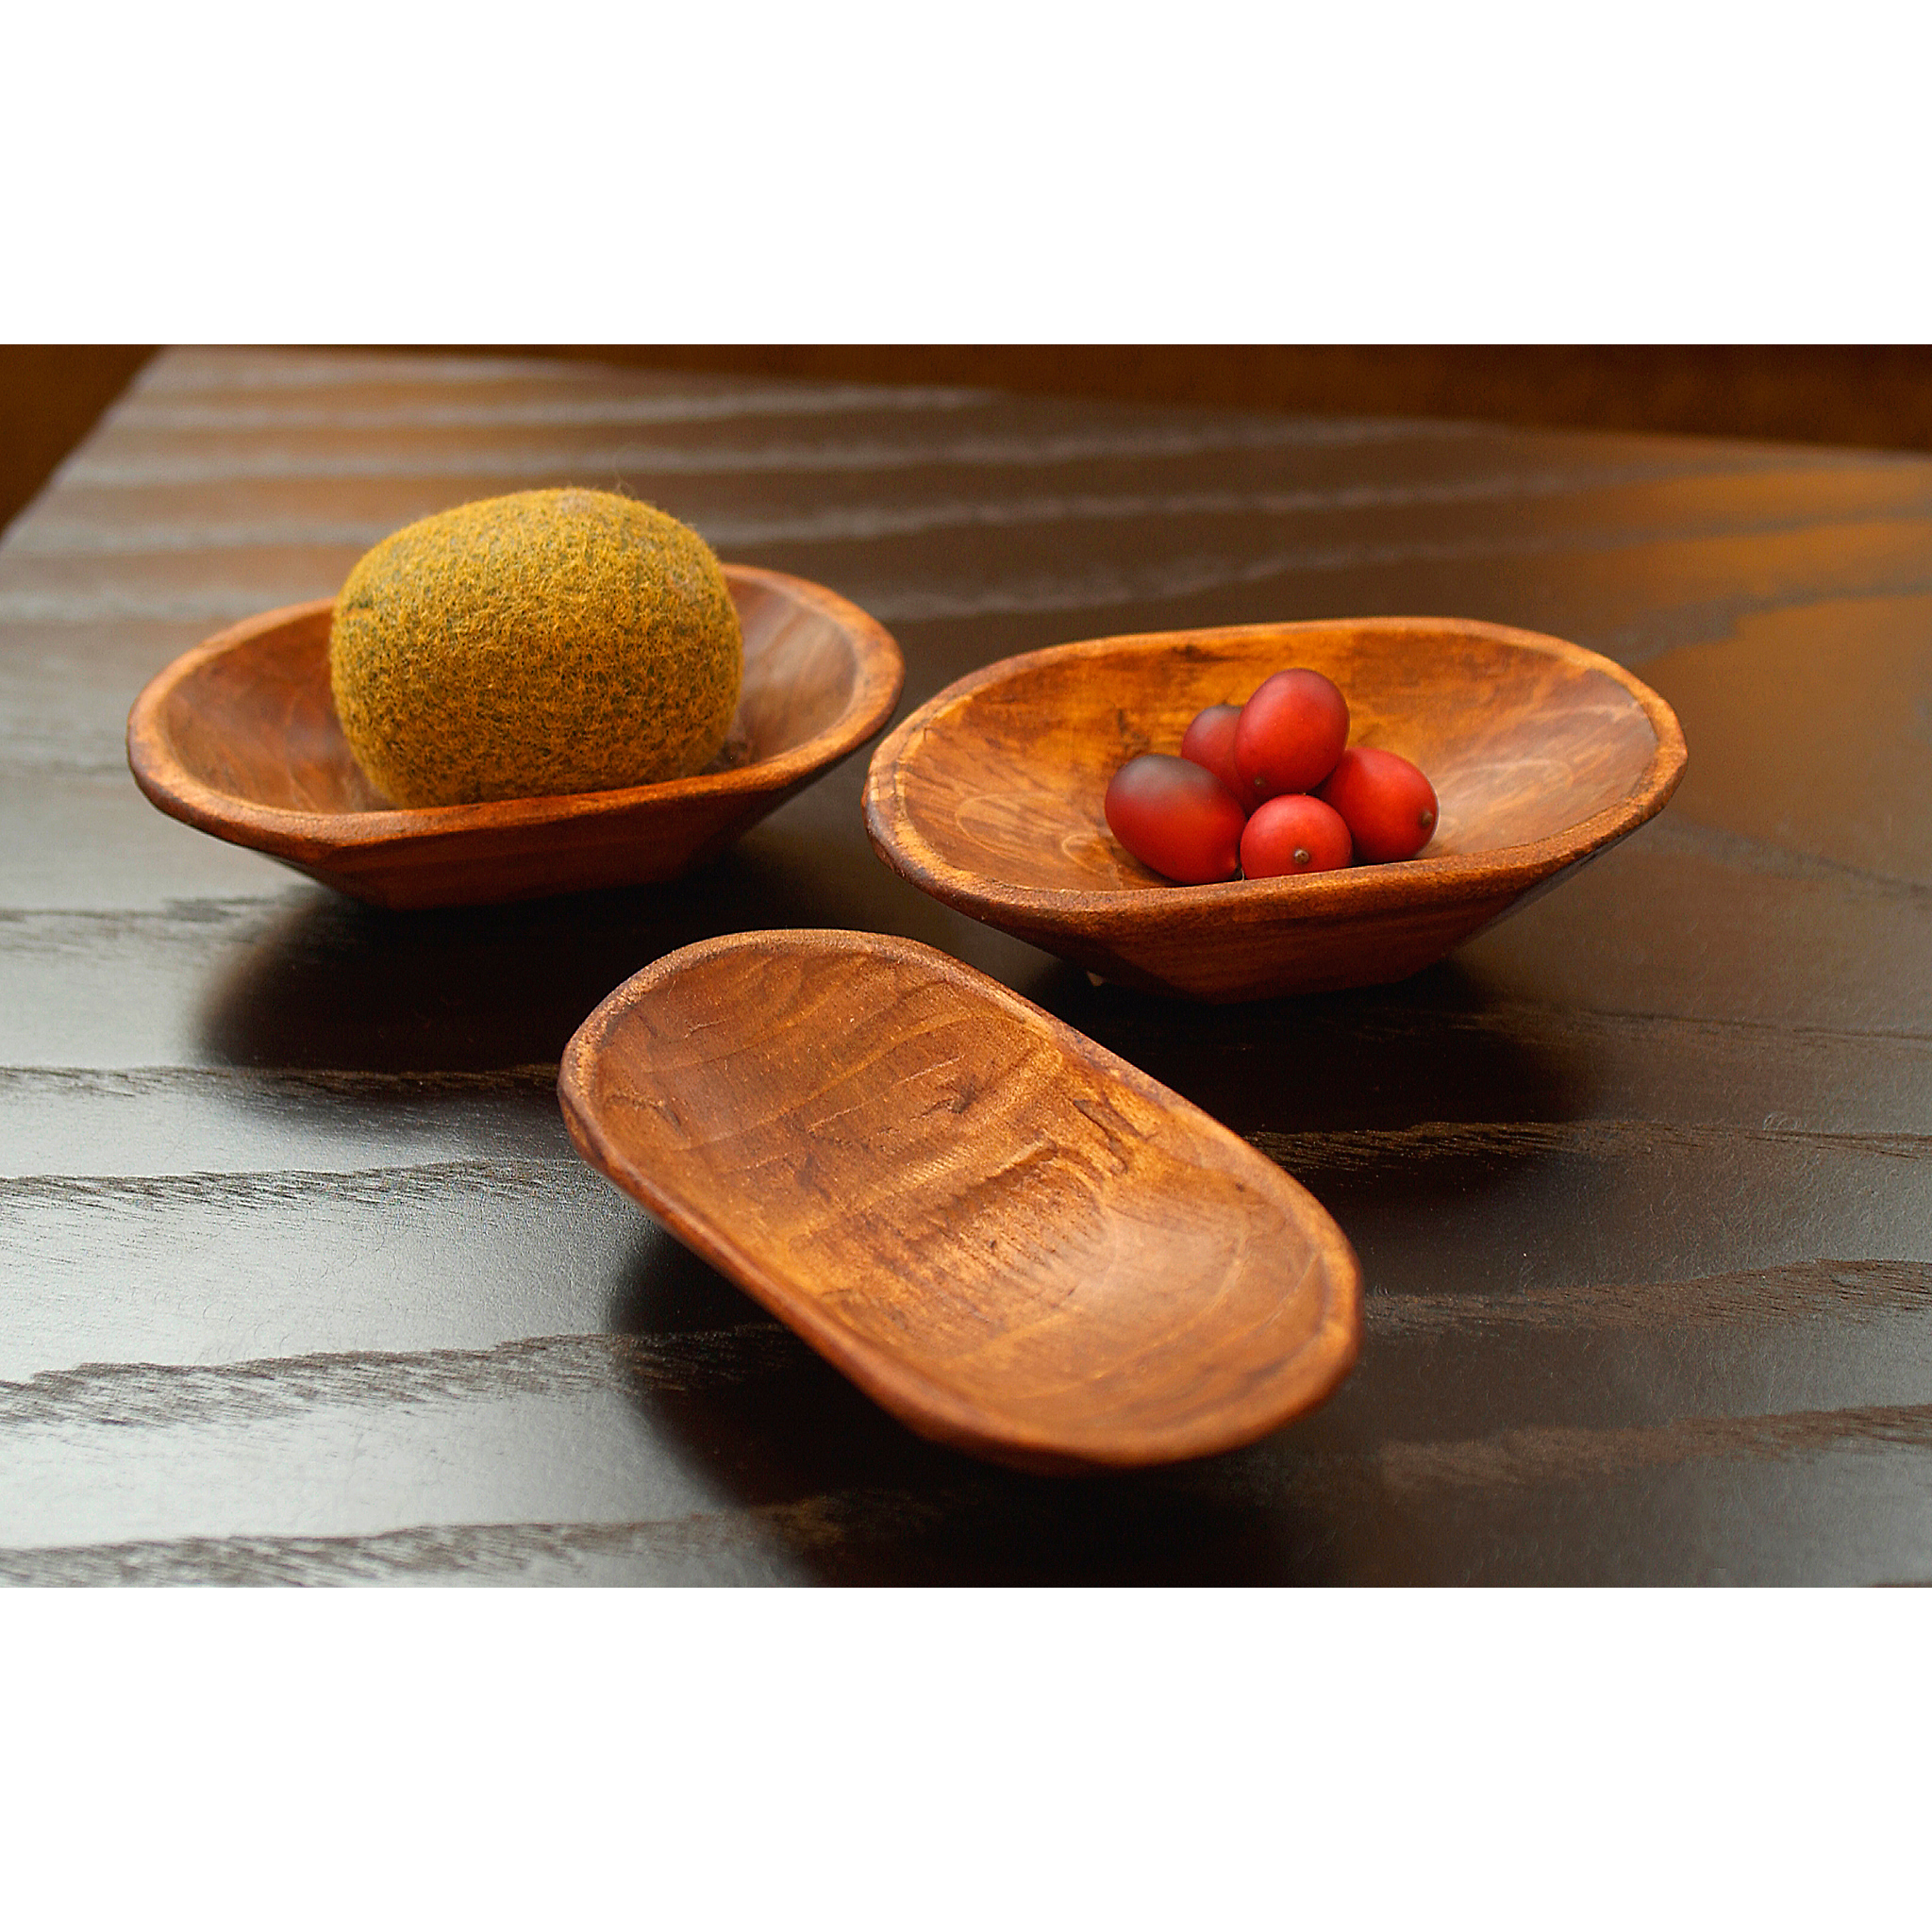 Photo of wooden scoops and berries